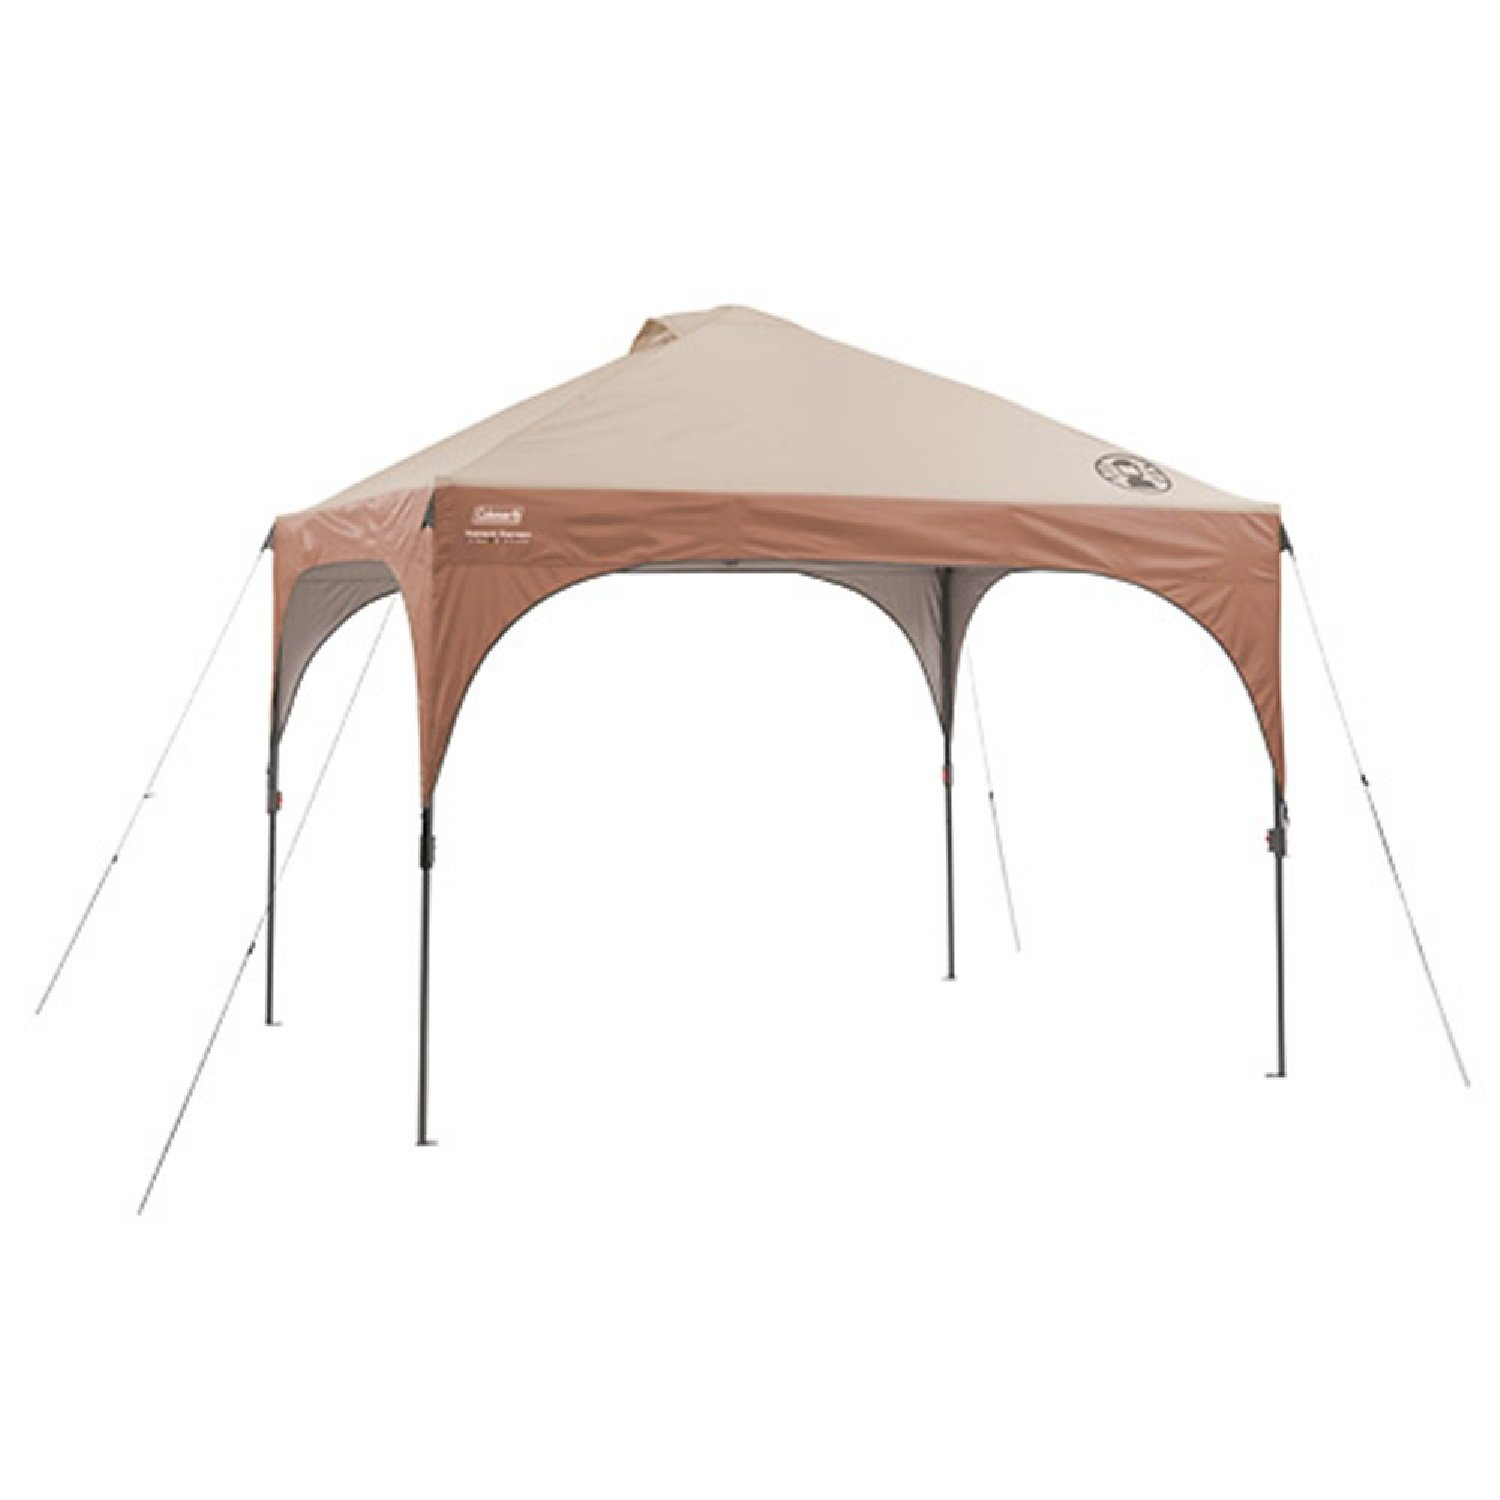 Amazon.com Coleman Instant Canopy Tent with LED Lighting System 10 x 10 Feet Sports u0026 Outdoors  sc 1 st  Amazon.com & Amazon.com: Coleman Instant Canopy Tent with LED Lighting System ...